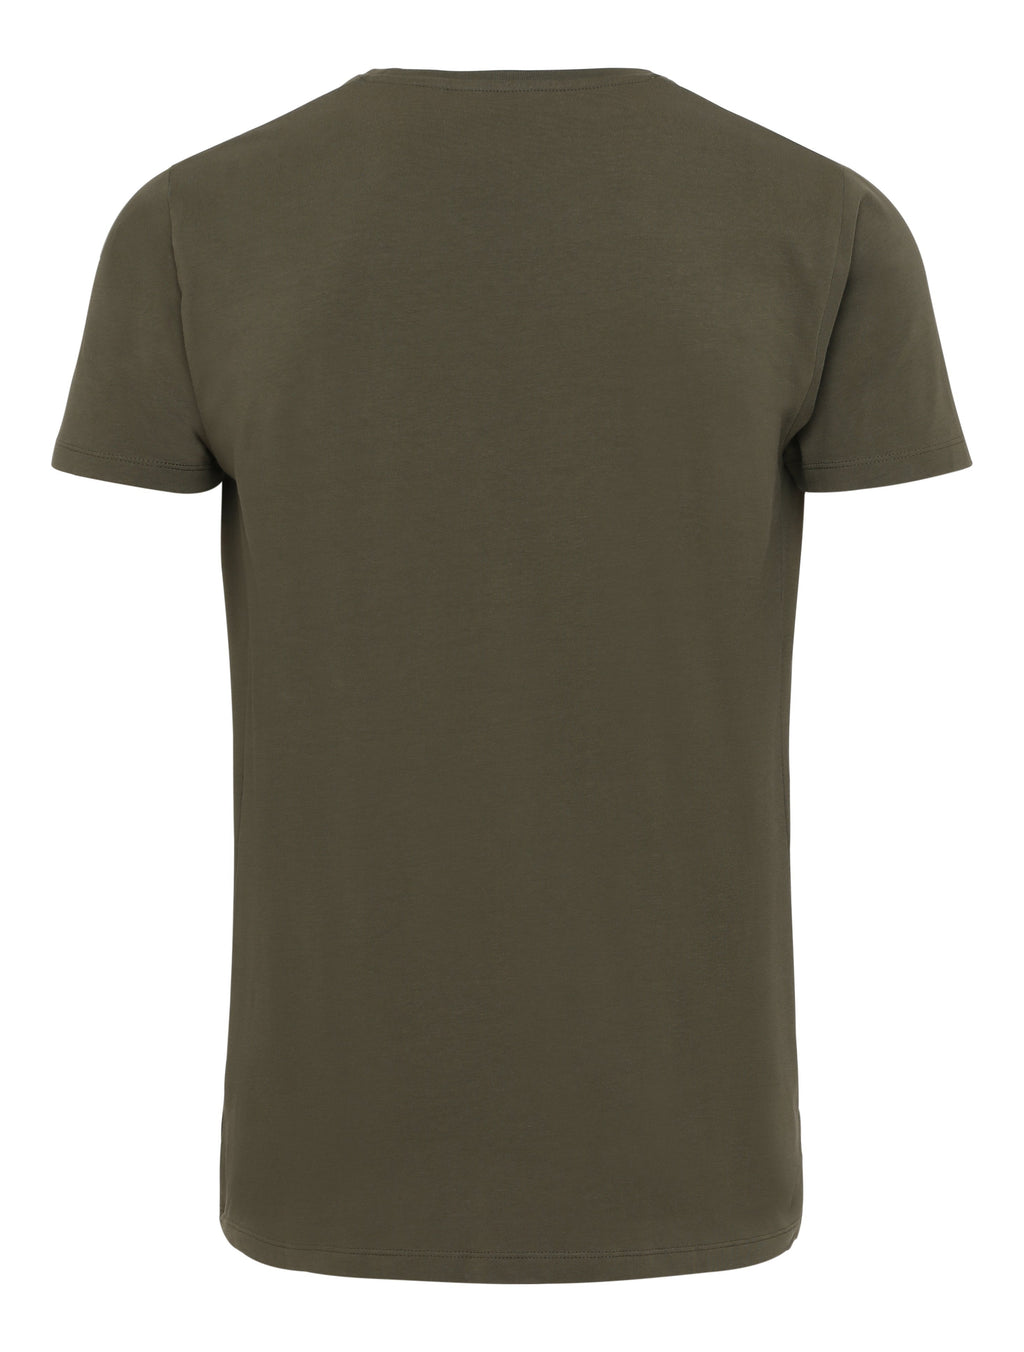 Muscle fit tee - Army